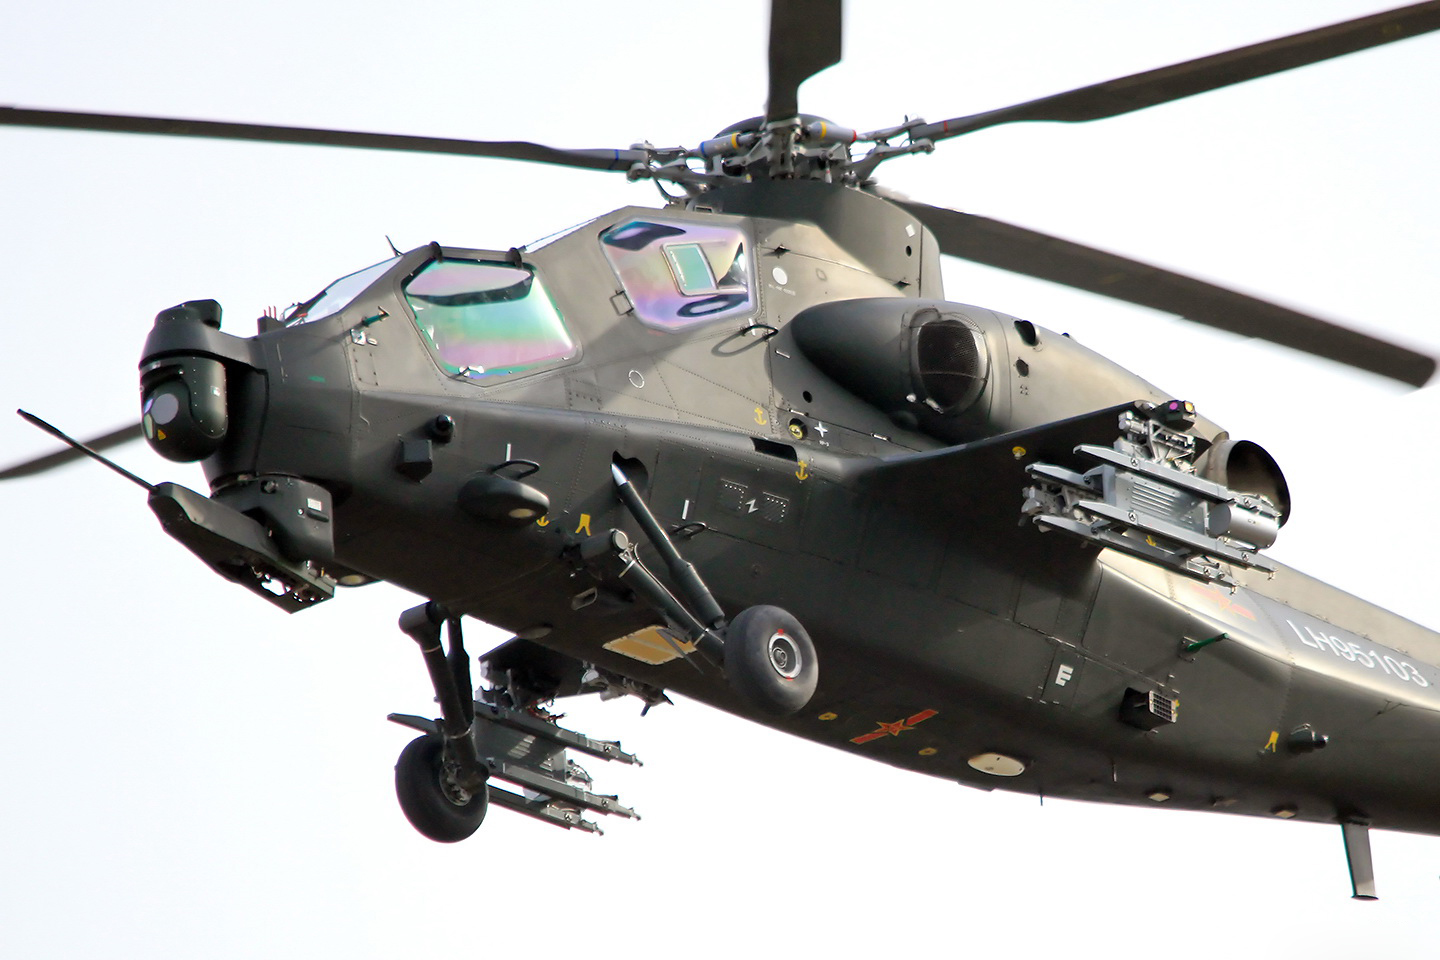 chine Z-10+Zhi-10+%2528Z-10%2529+attack+helicopter+People%2527s+Liberation+Army+%2528PLA%2529+gunship+has+been+developed+by+Changhe+Aircraft+Industries+Group+%2528CAIG%2529+and+China+Helicopter+Research+and+Development+Institute+%2528CHRDI%2529%252C+missile++%25282%2529